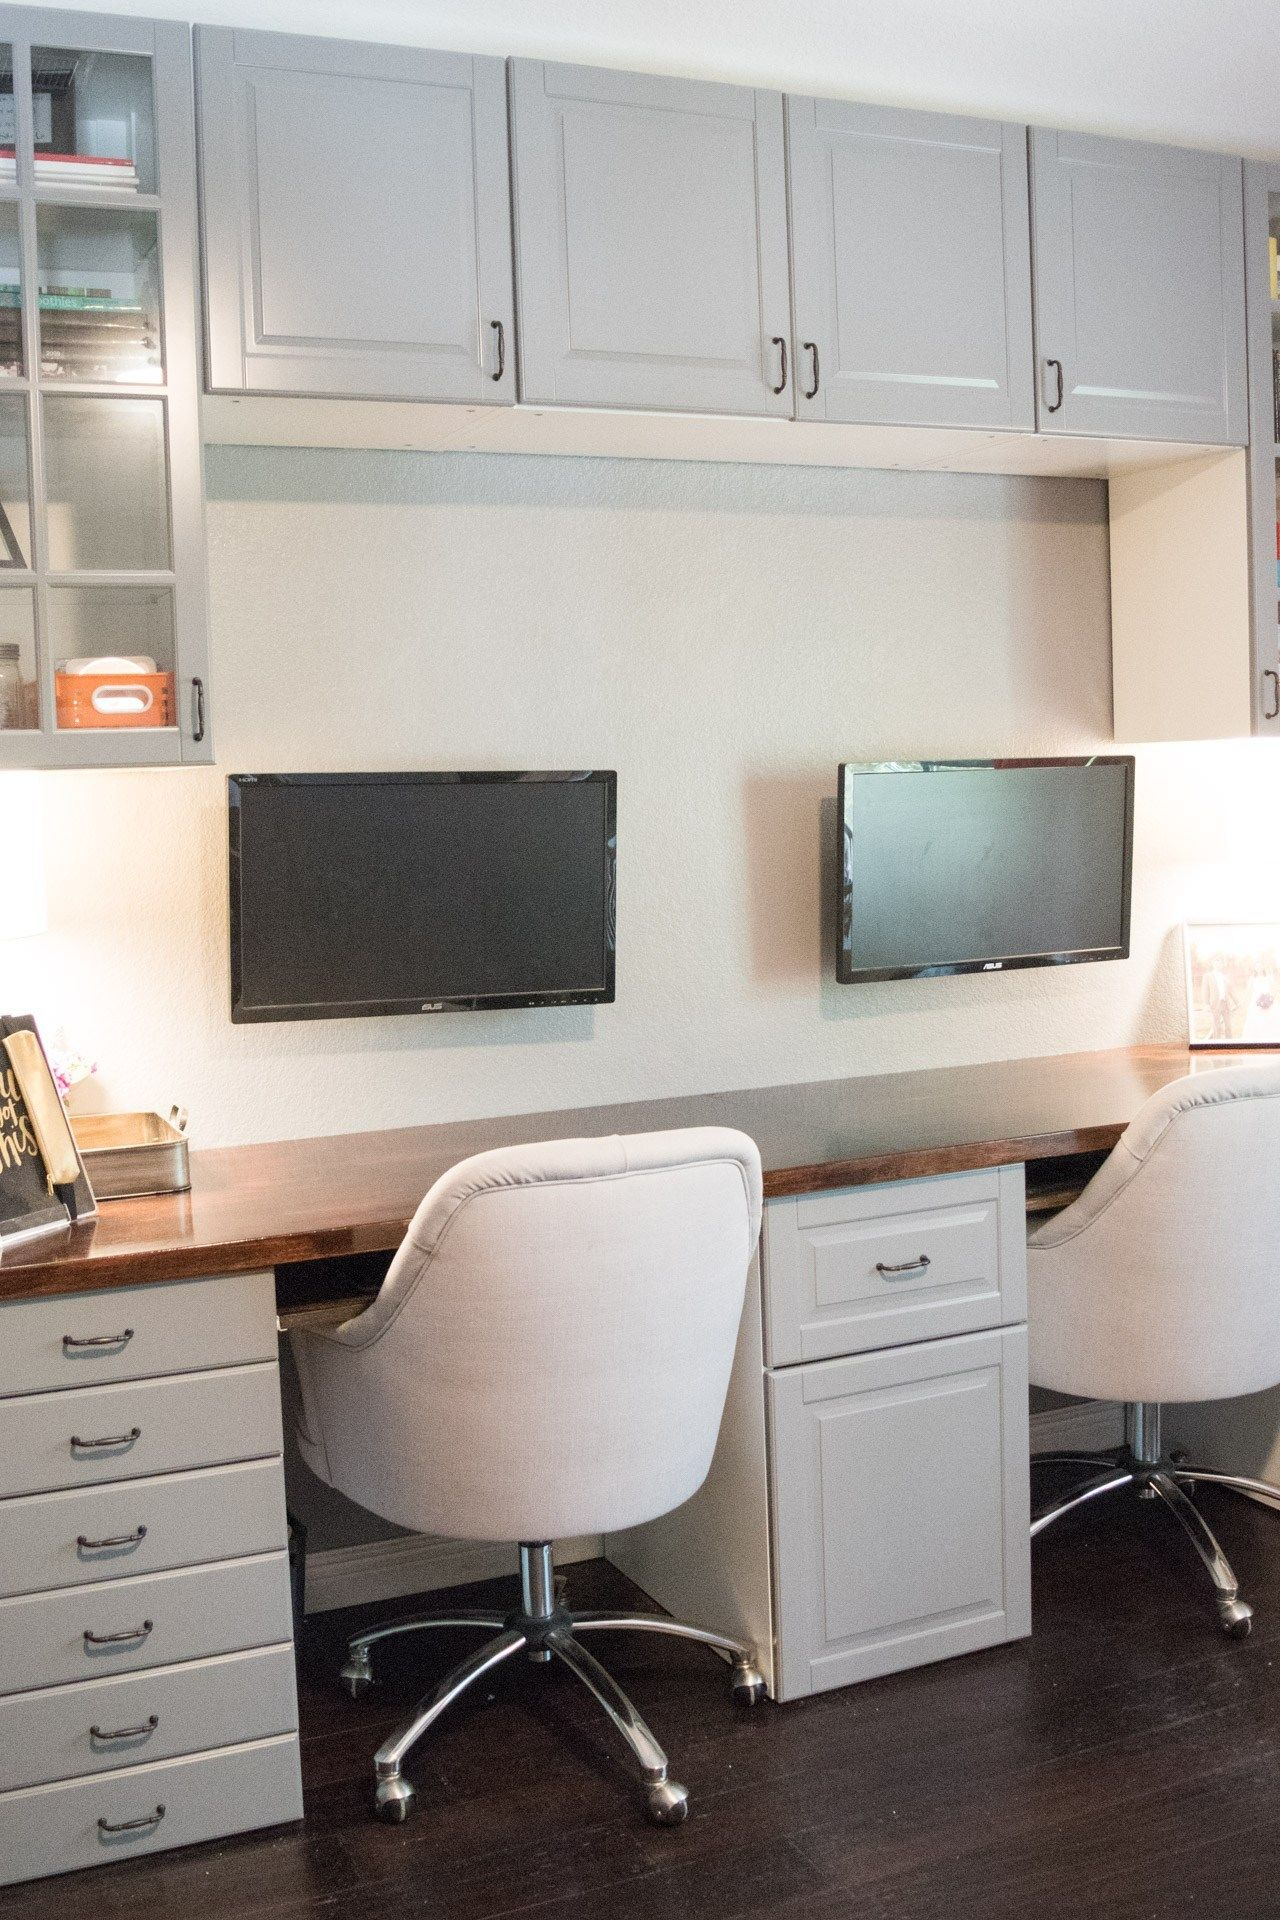 How To Make A Desk From Kitchen Cabinets Part Two Diy Without Fear Ikea Home Office Home Office Cabinets Cheap Office Furniture